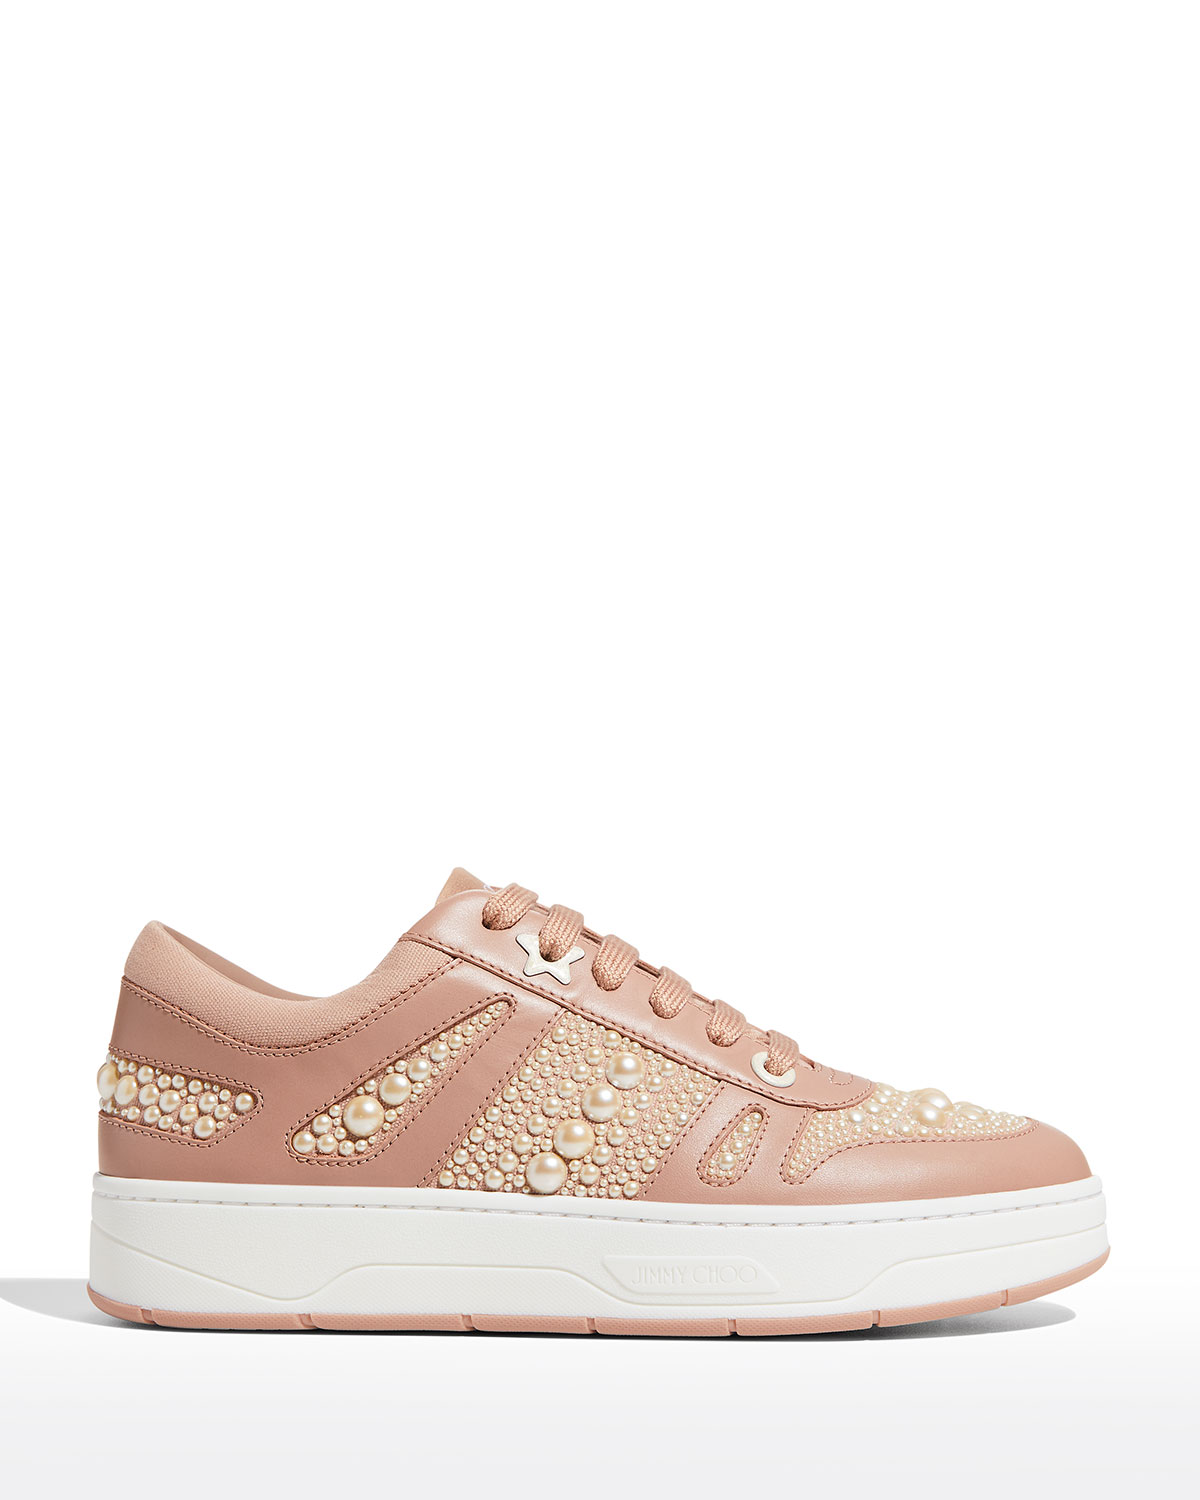 Hawaii Pearly Leather Flatform Sneakers